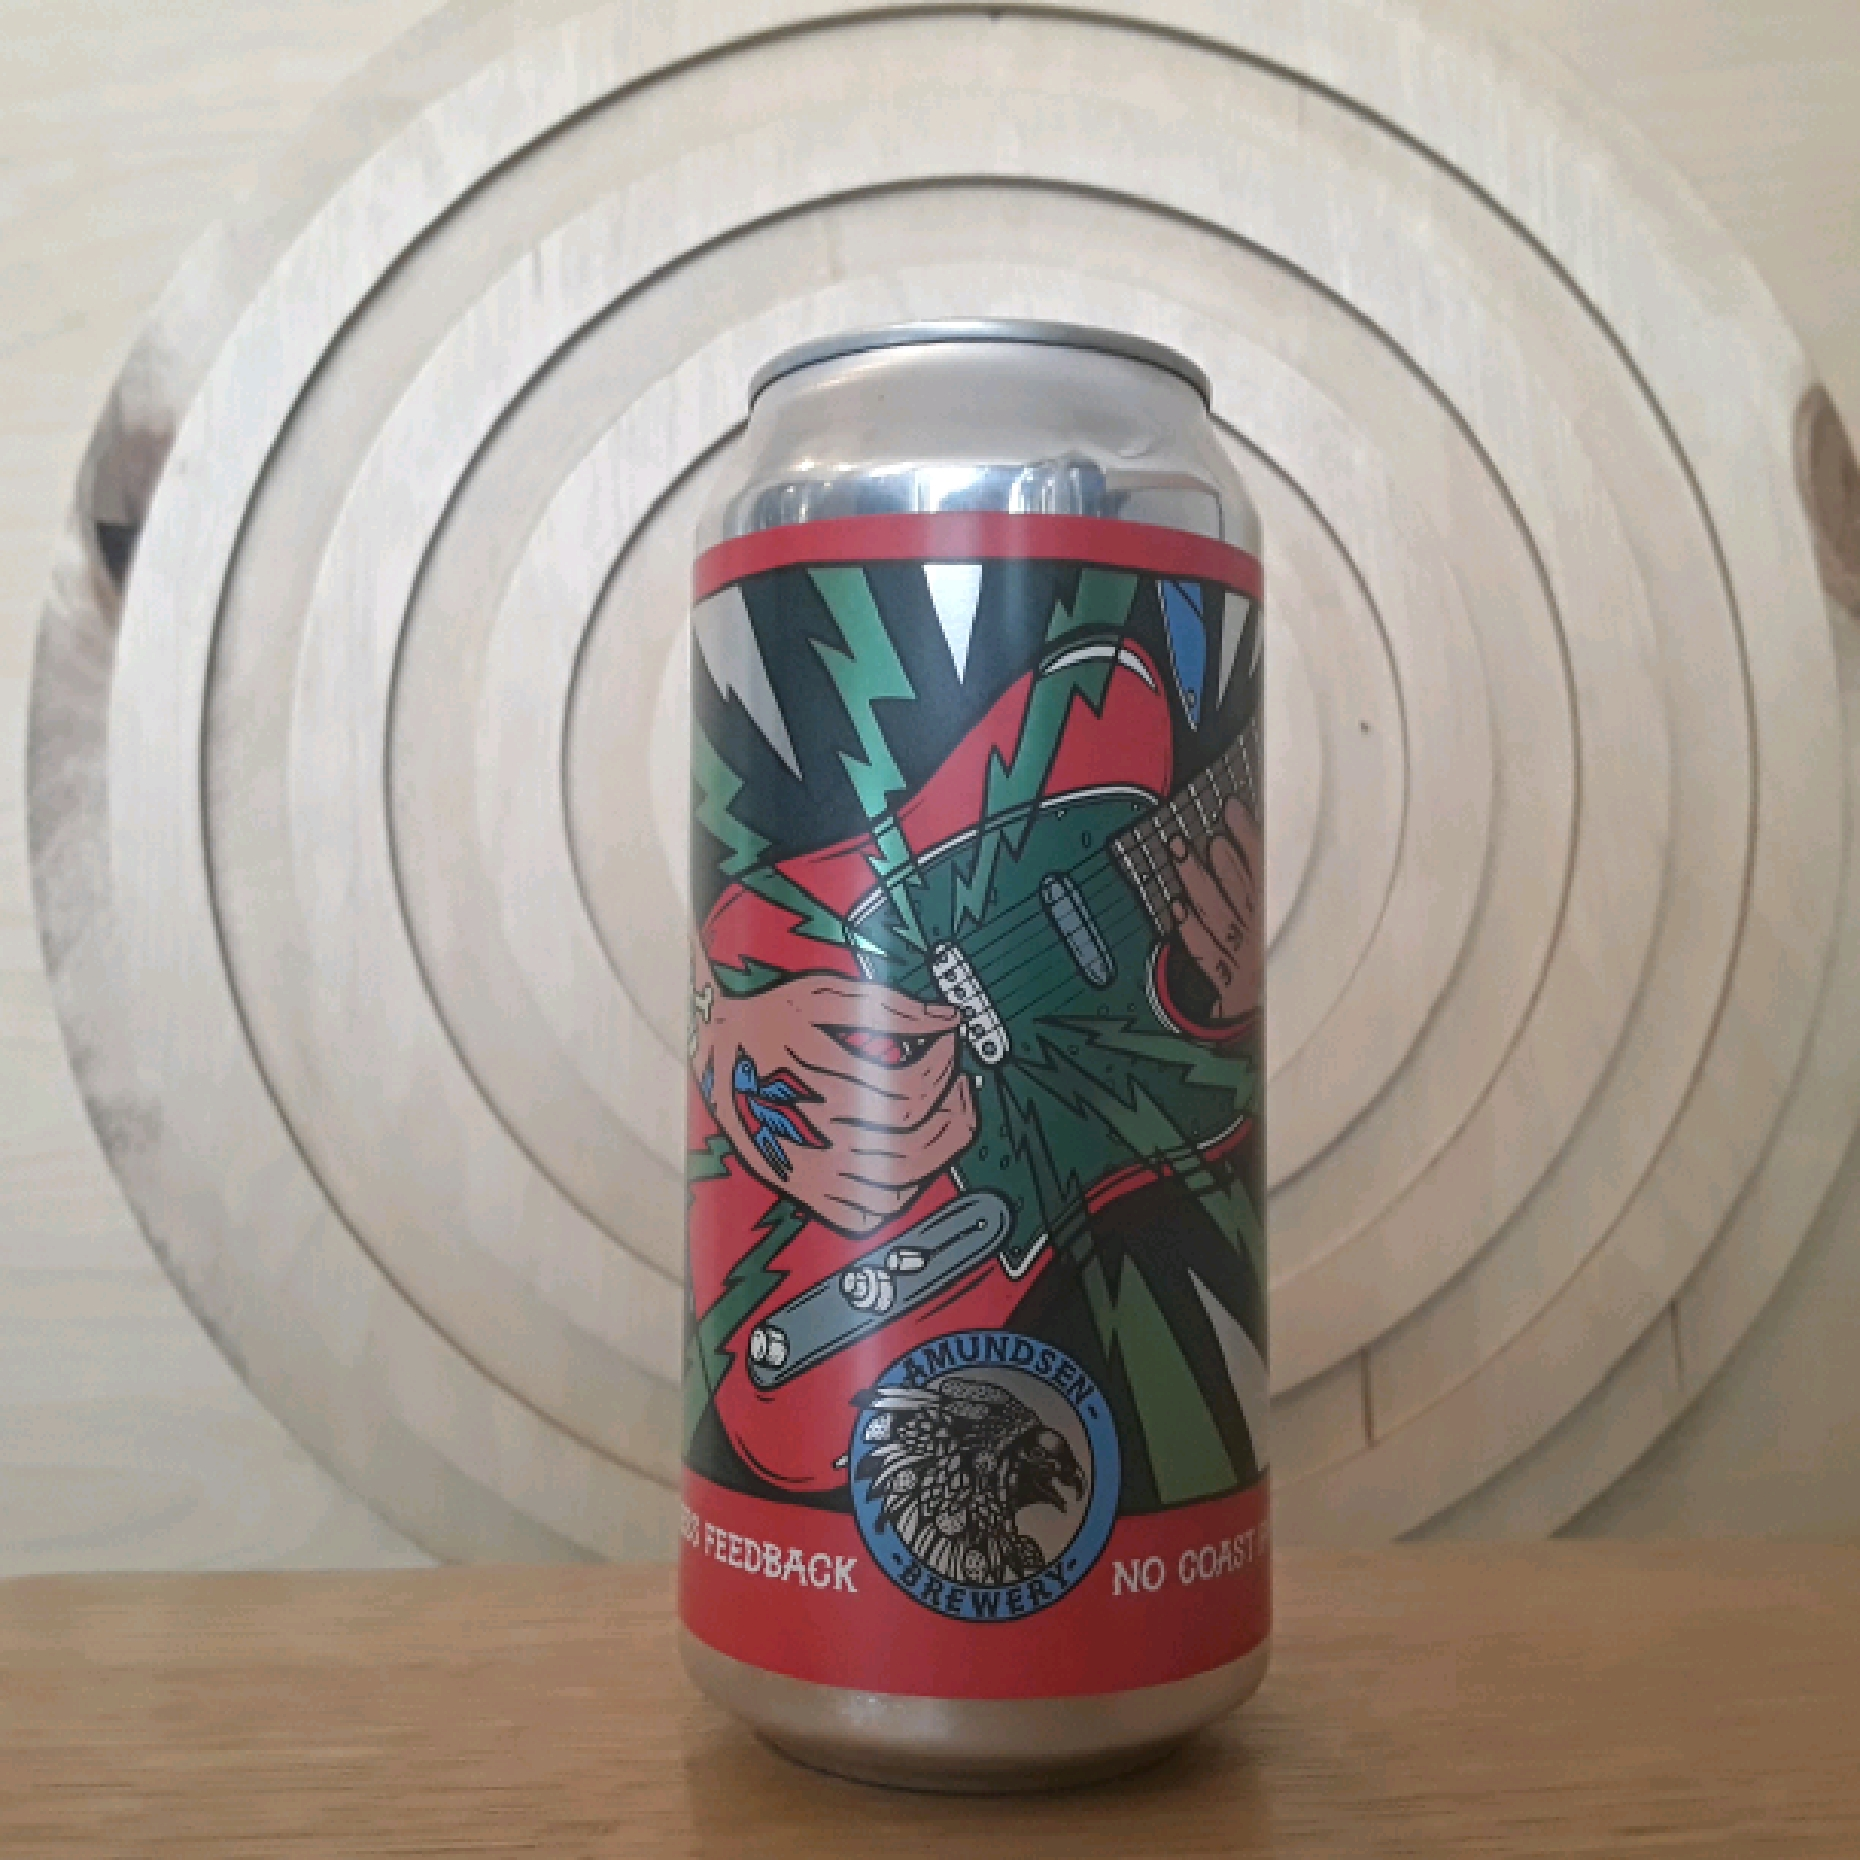 Amundsen Endless Feedback No Coast IPA